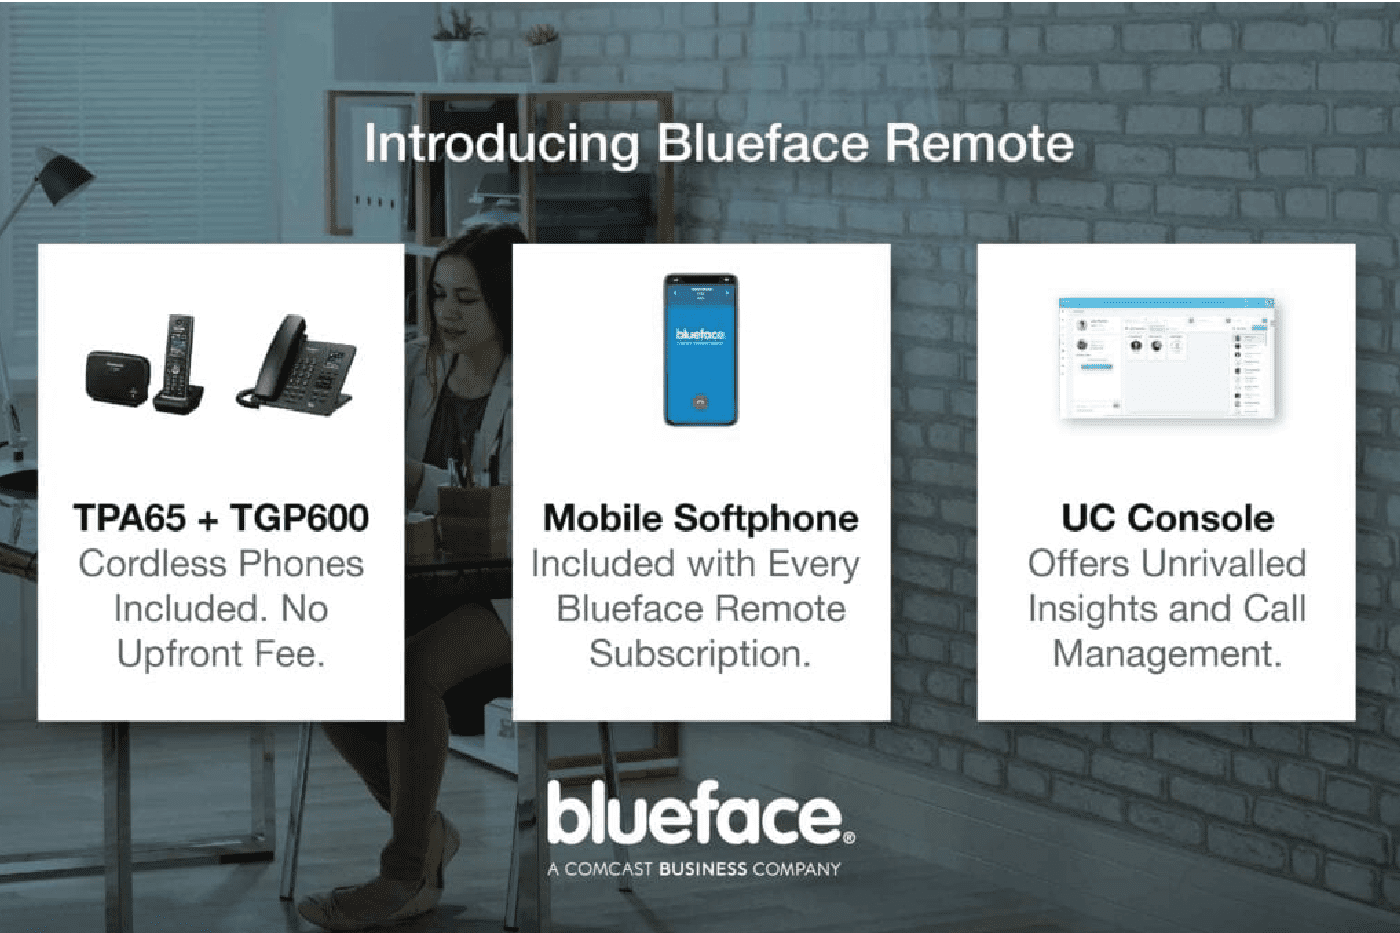 Introducing Blueface Remote